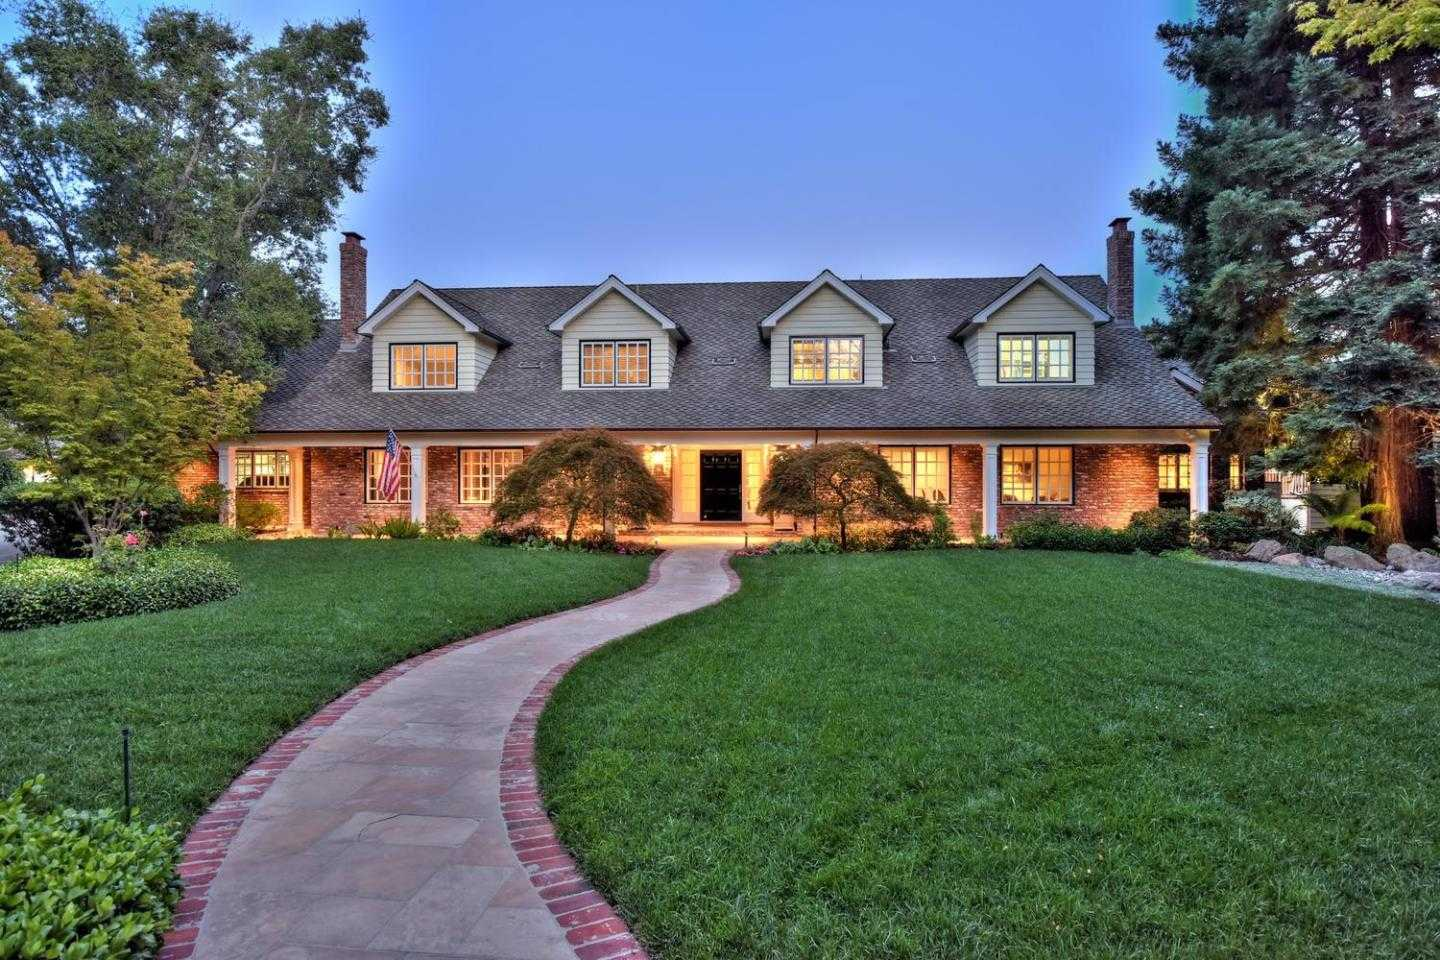 $6,398,000 - 5Br/5Ba -  for Sale in Saratoga